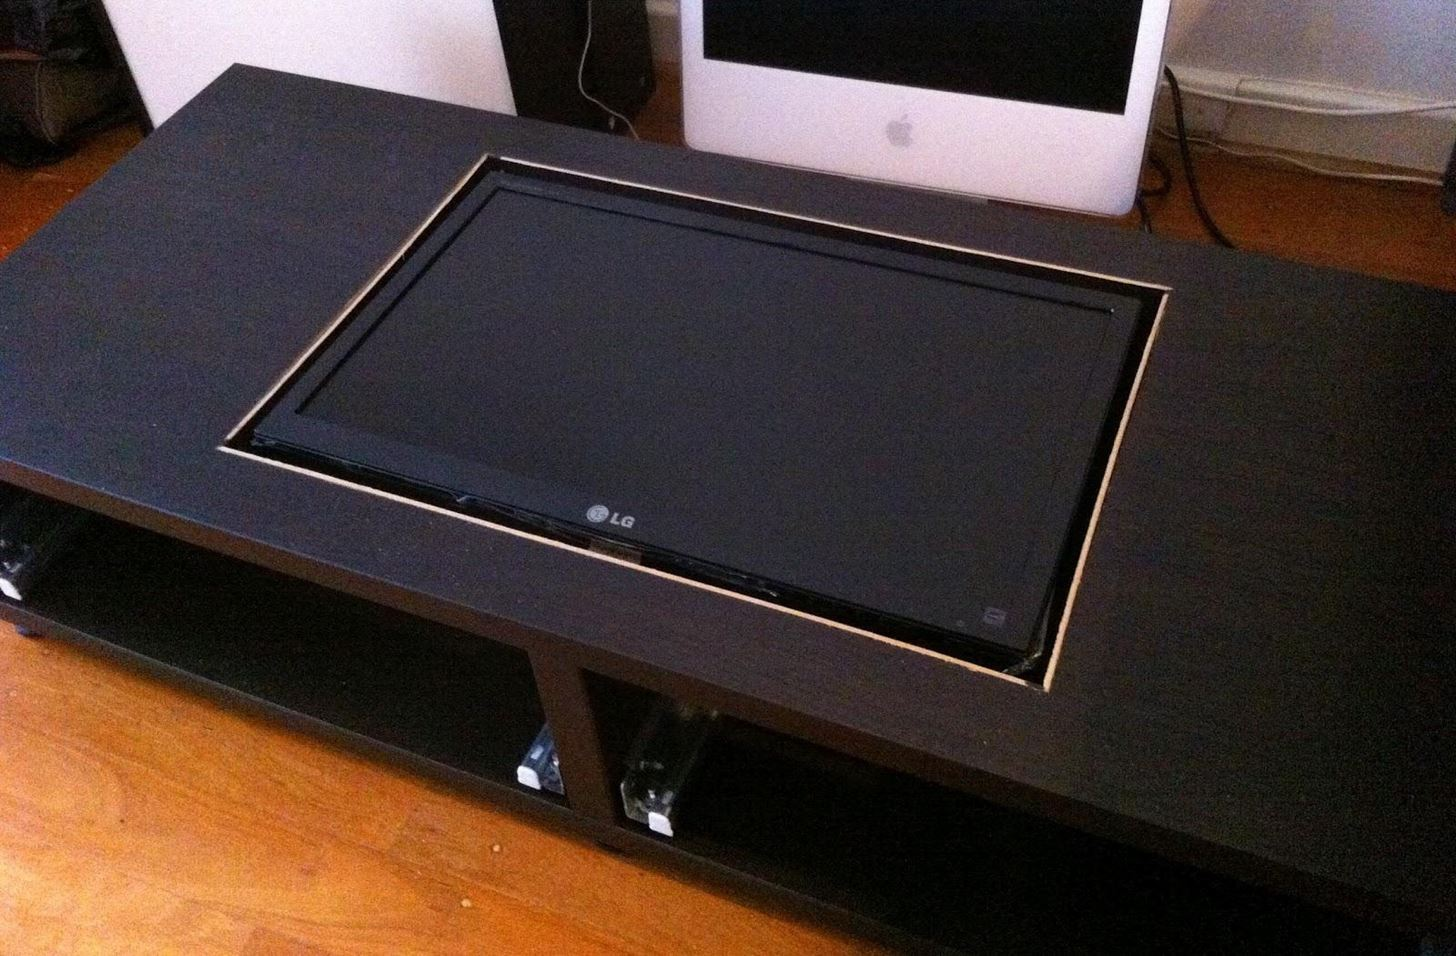 Disguise your gaming addiction with this diy coffee table arcade disguise your gaming addiction with this diy coffee table arcade machine hacks mods circuitry gadget hacks geotapseo Choice Image